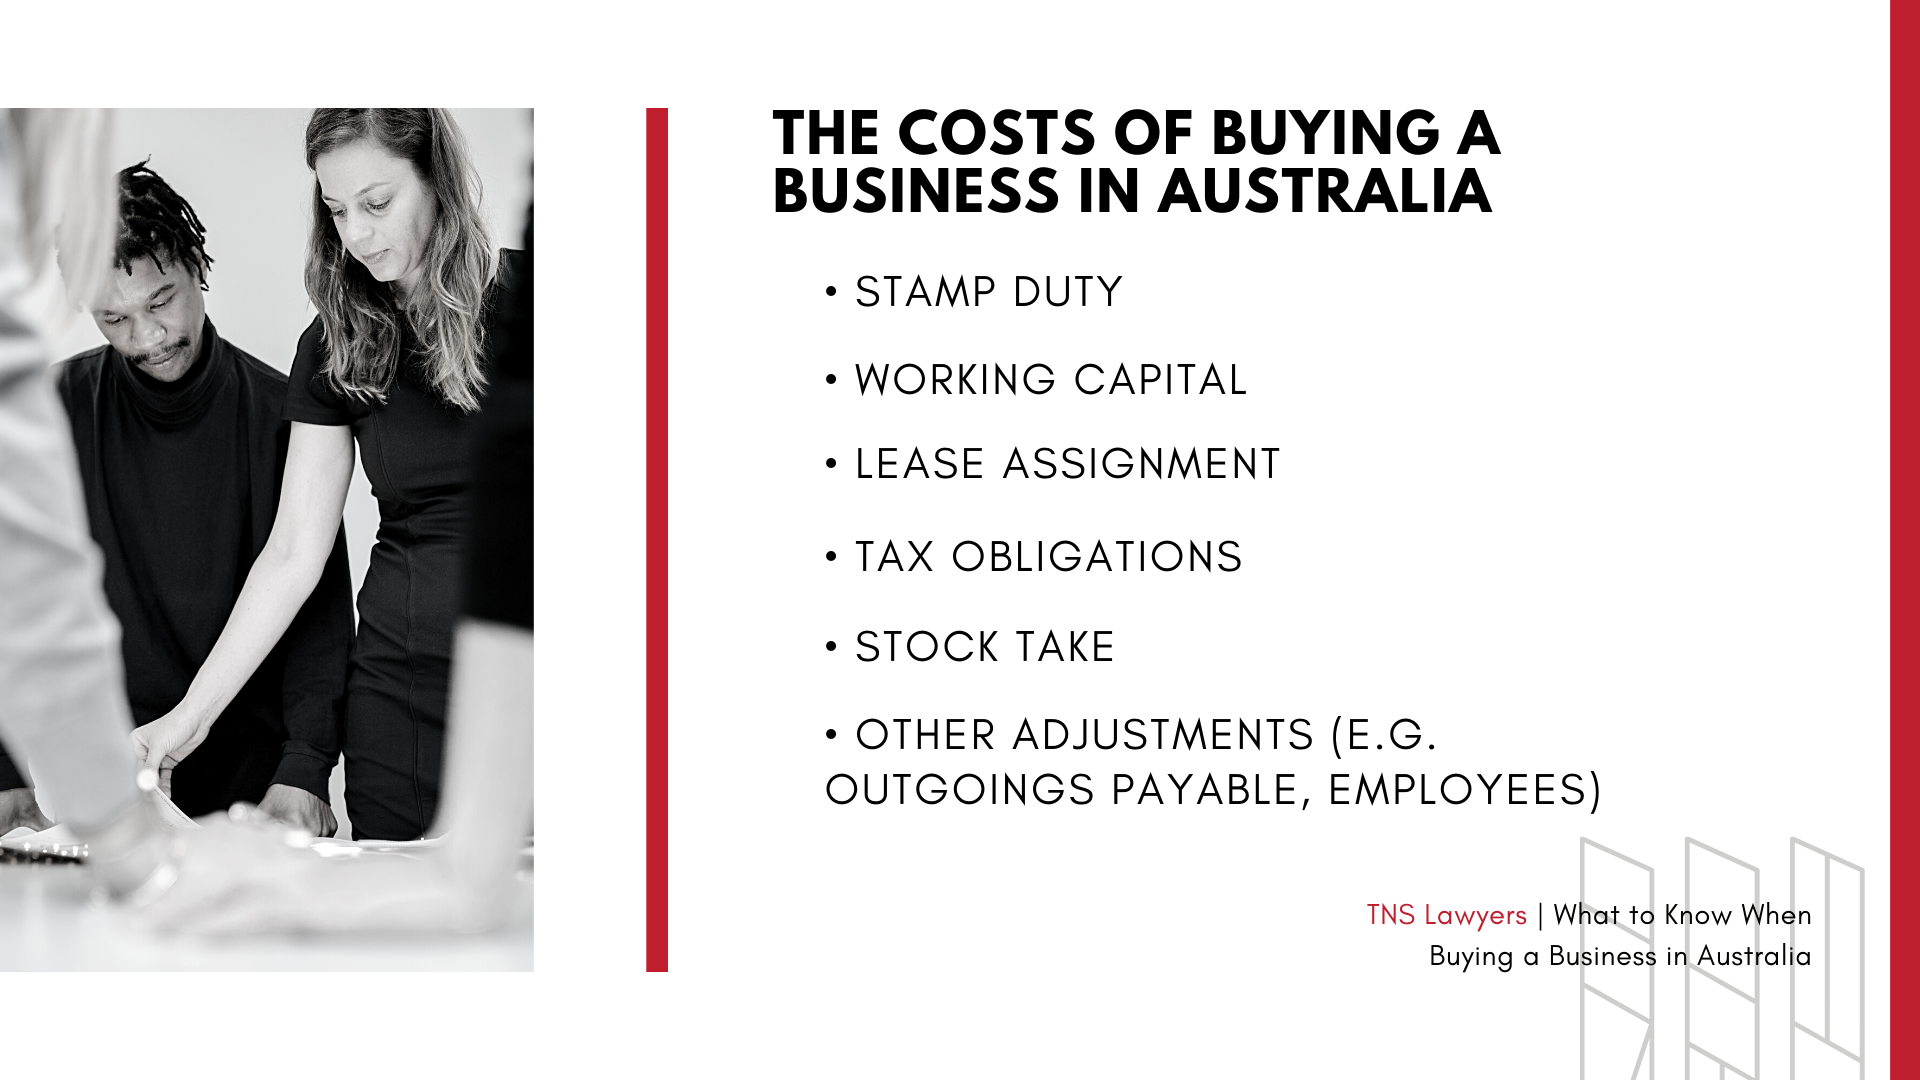 the costs of buying a business in Australia